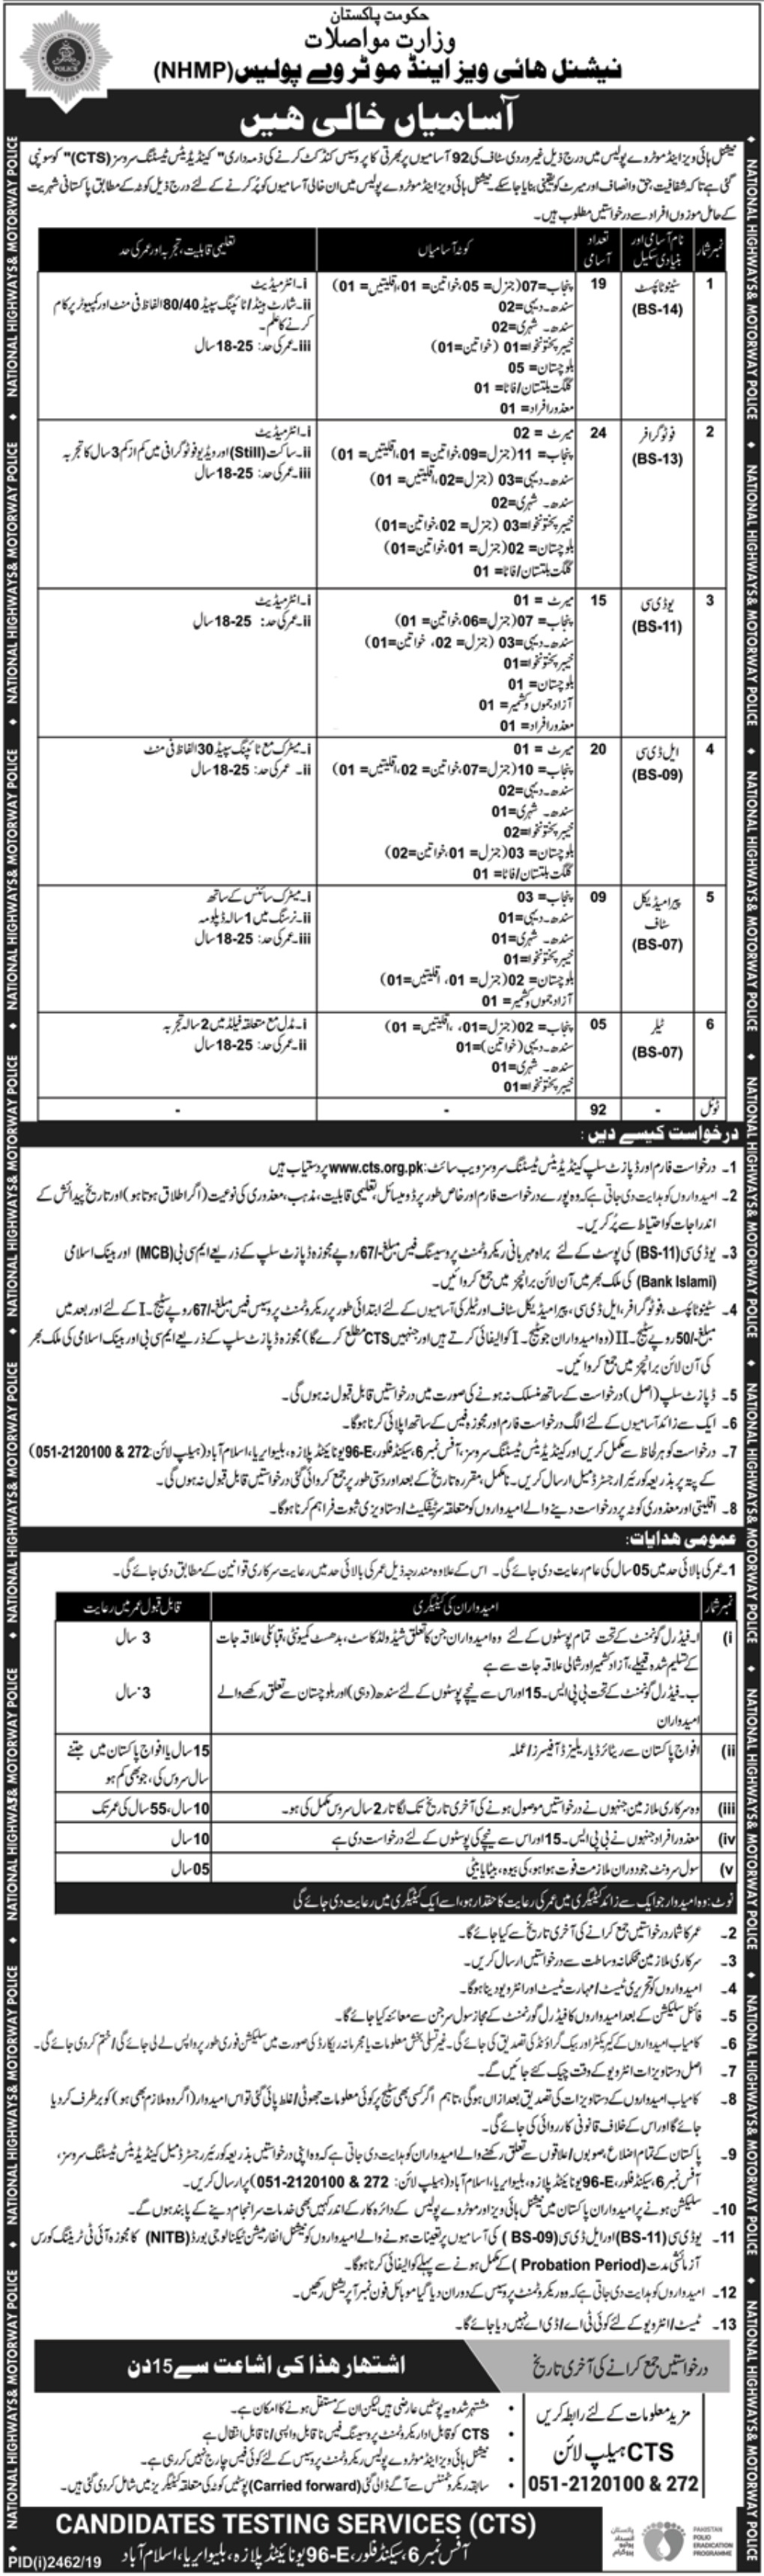 National Highways & Motorway Police NHMP Jobs 2019 Apply through CTS